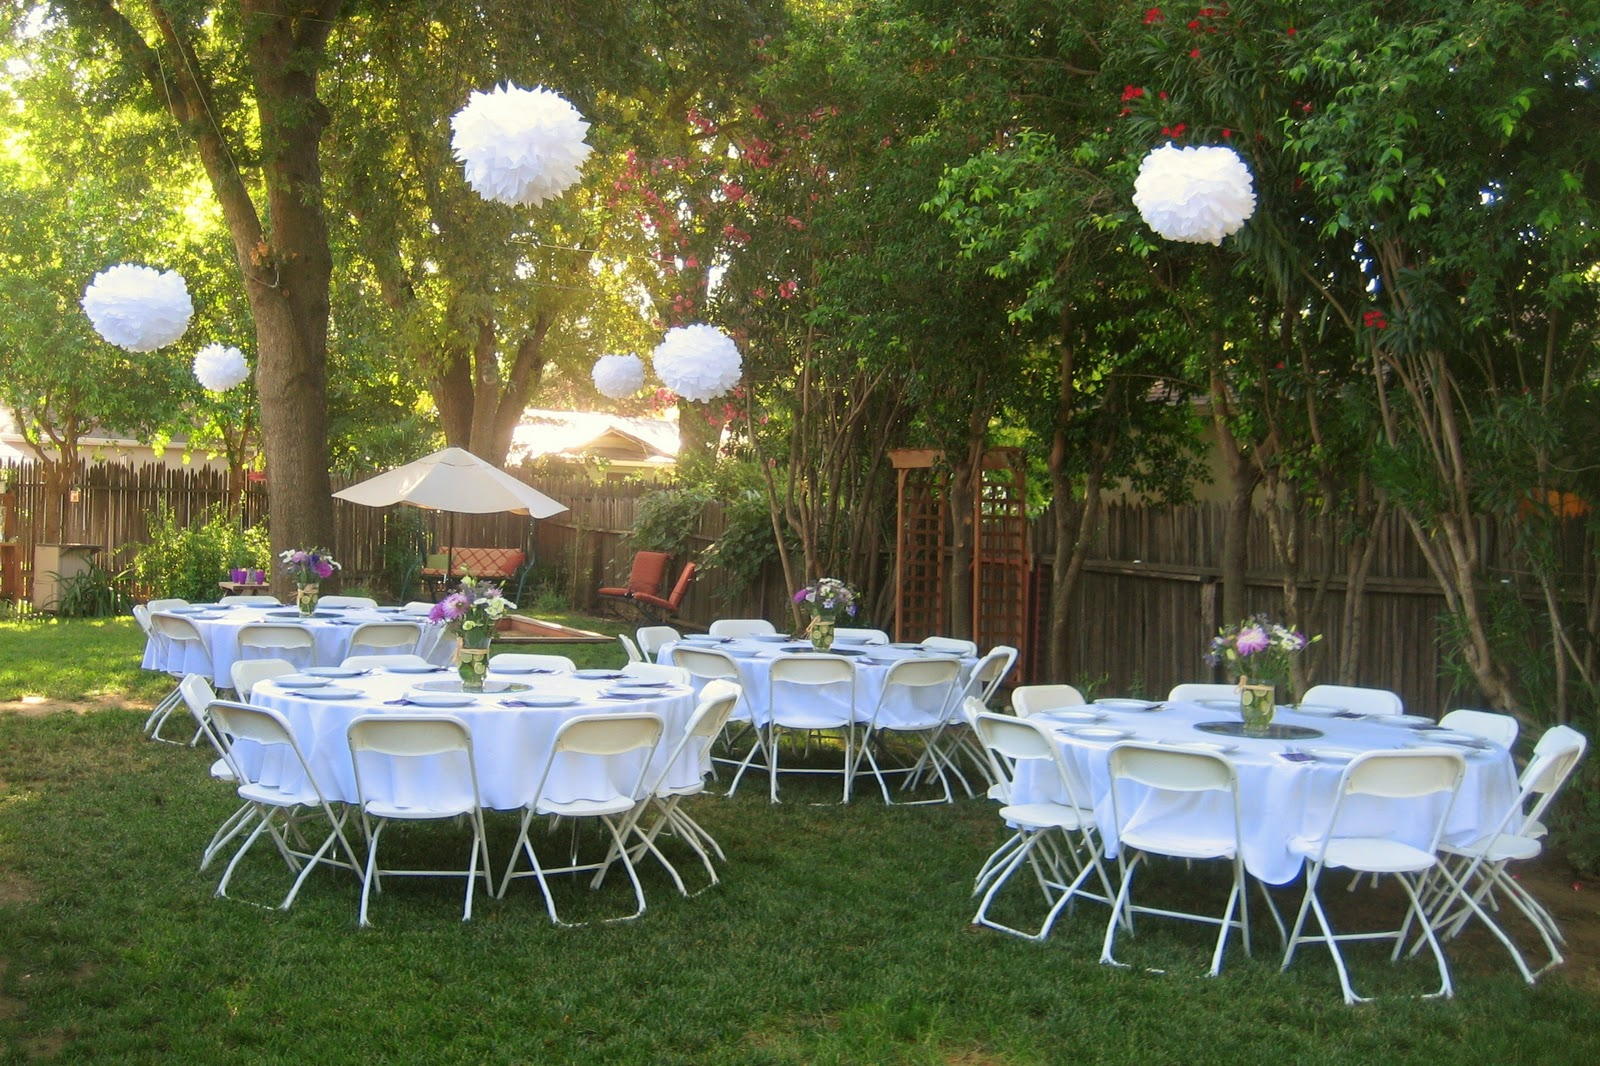 A resting place for completed projects backyard bridal for Backyard engagement party decoration ideas